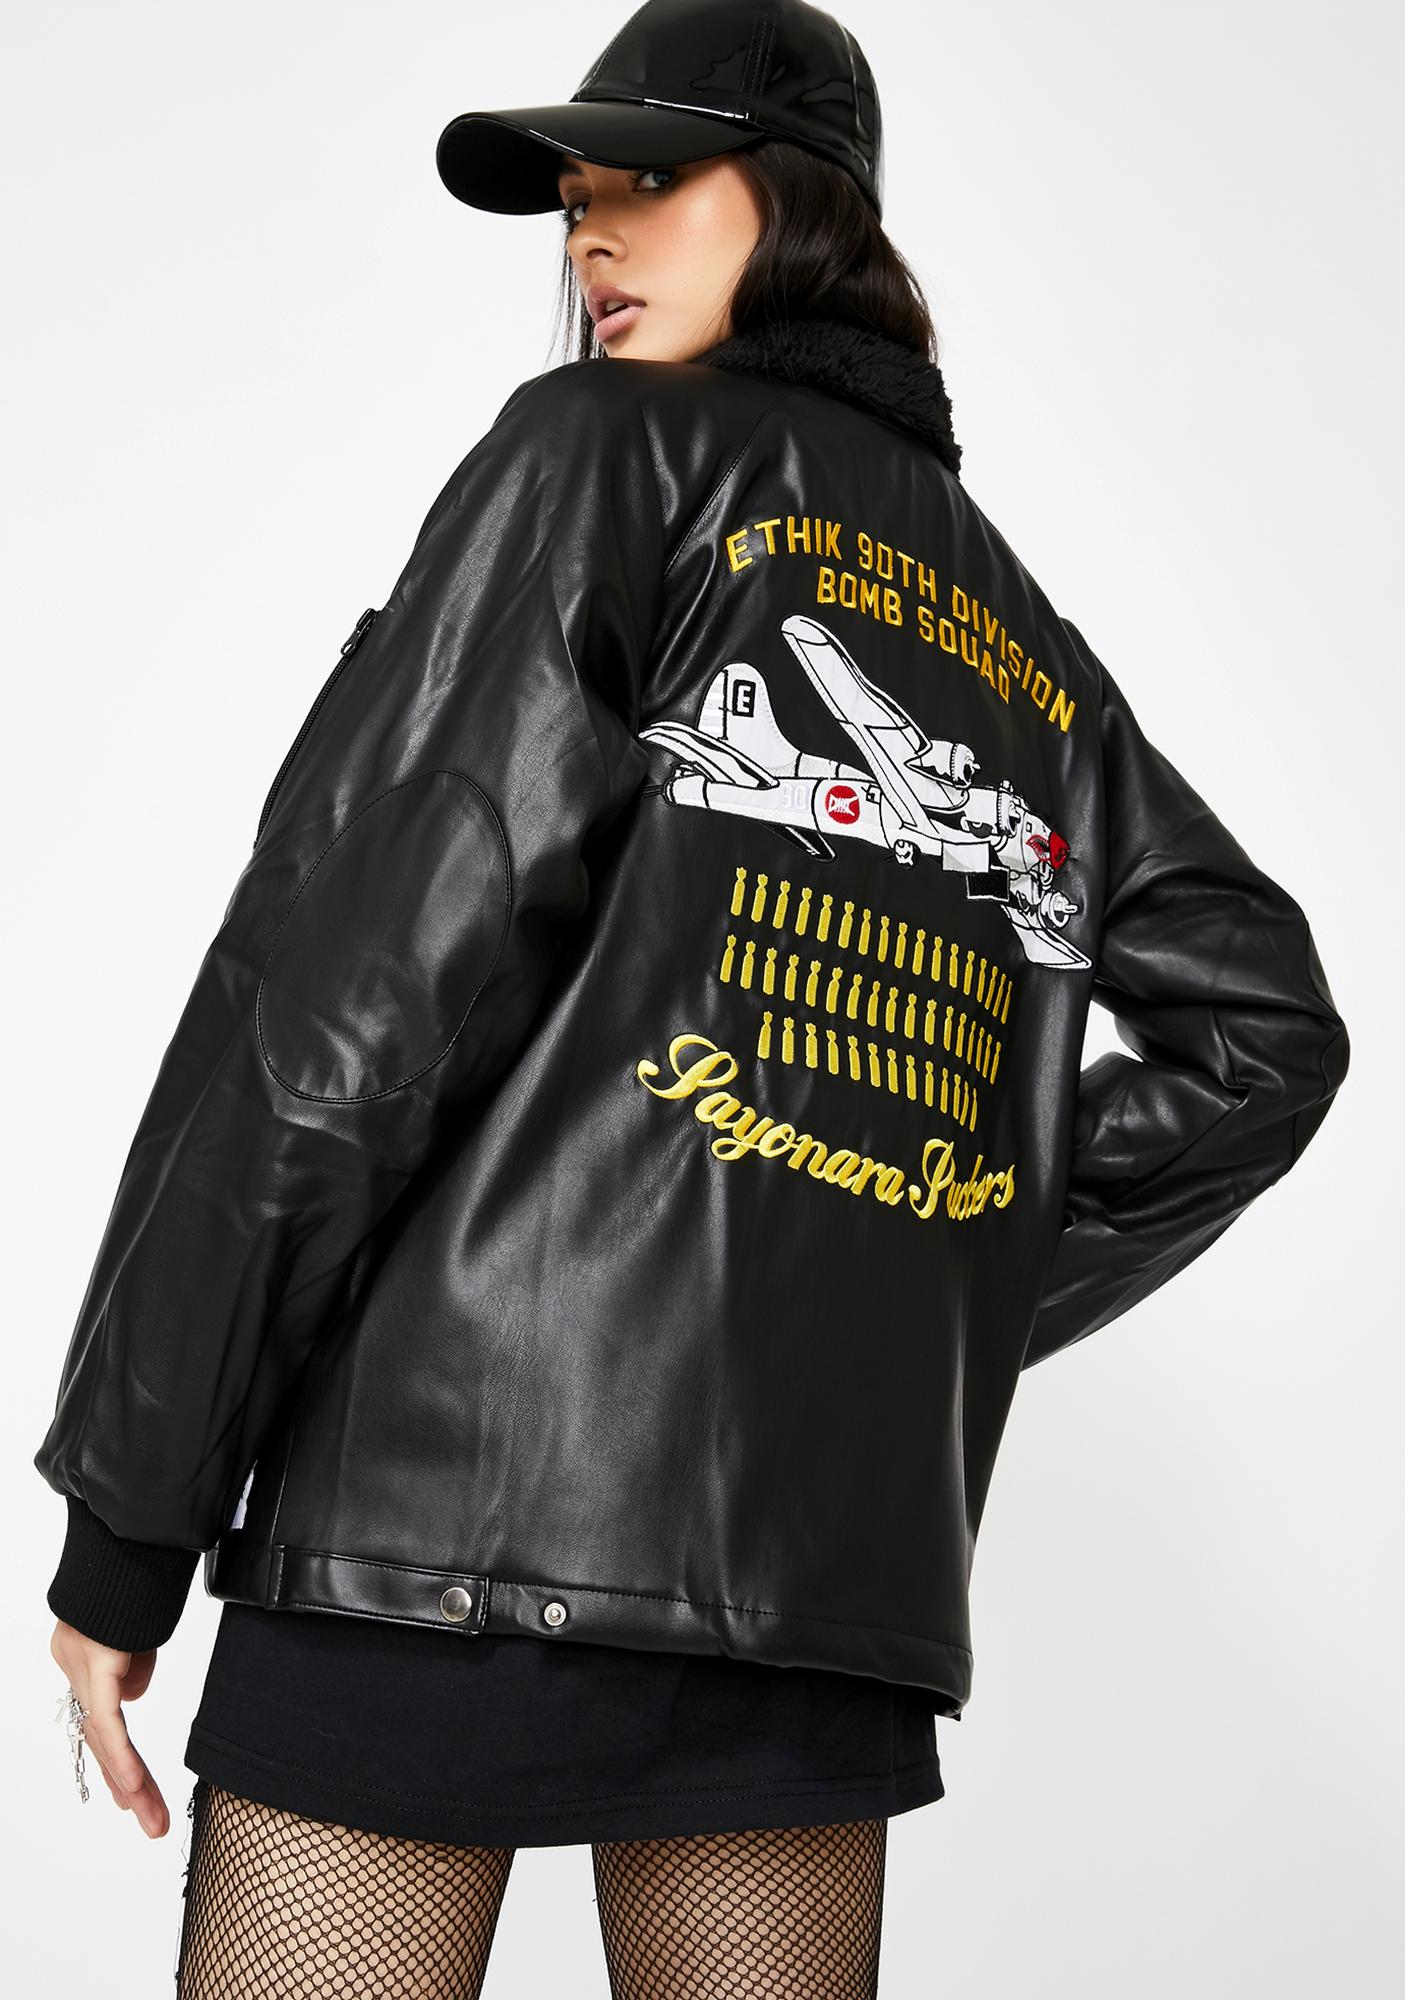 ETHIK Bomb Squad Vegan Leather Jacket